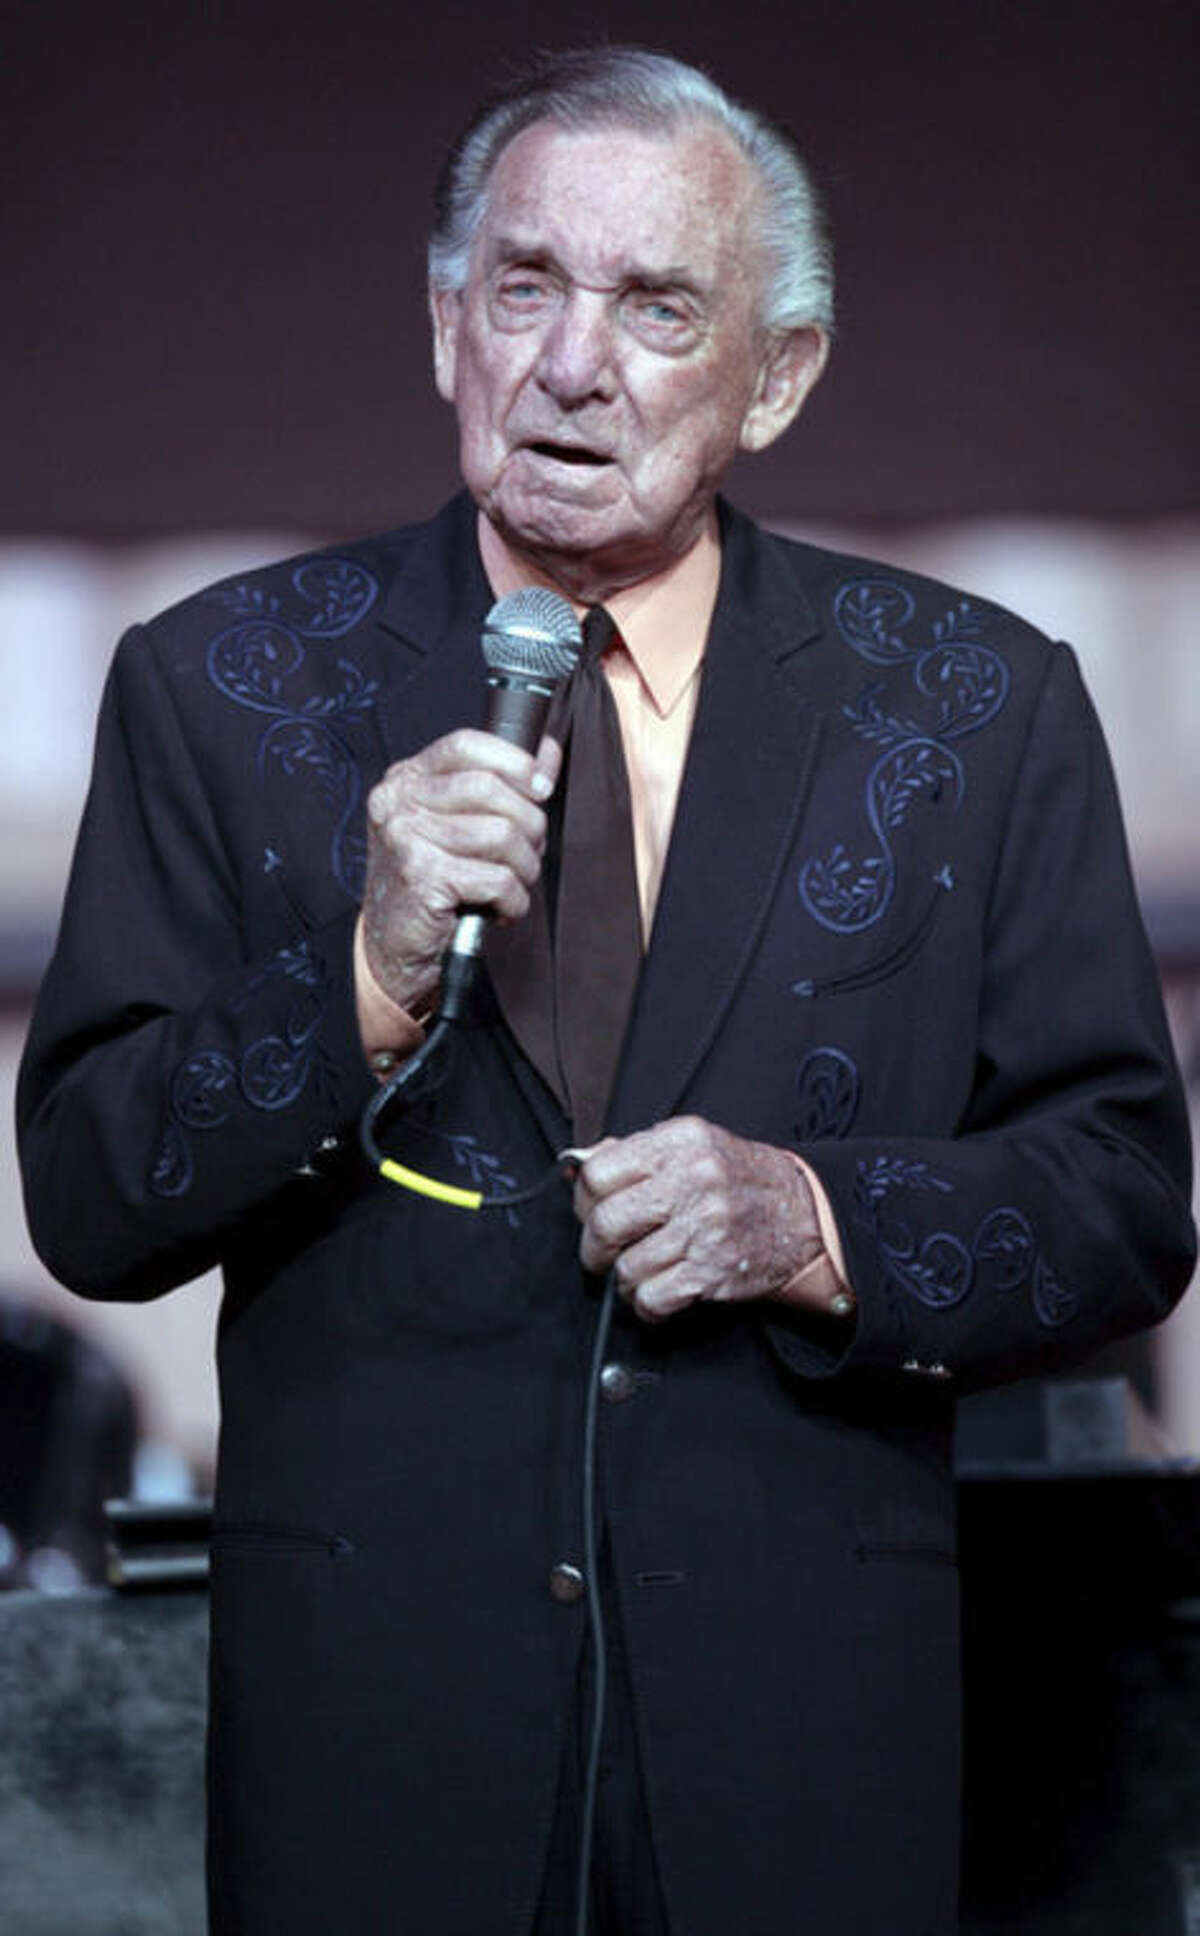 FILE - In a Jan. 7, 2011, file photo, Country Music Hall of Fame member and Grammy award winner Ray Price celebrates his 86th birthday by performing in Bullard Texas. Price, one of country music's most popular and influential singers and bandleaders who had more than 100 hits and was one of the last living connections to Hank Williams, died Monday, Dec. 16, 2013. He was 87. (AP Photo/Dr. Scott M. Lieberman, File)